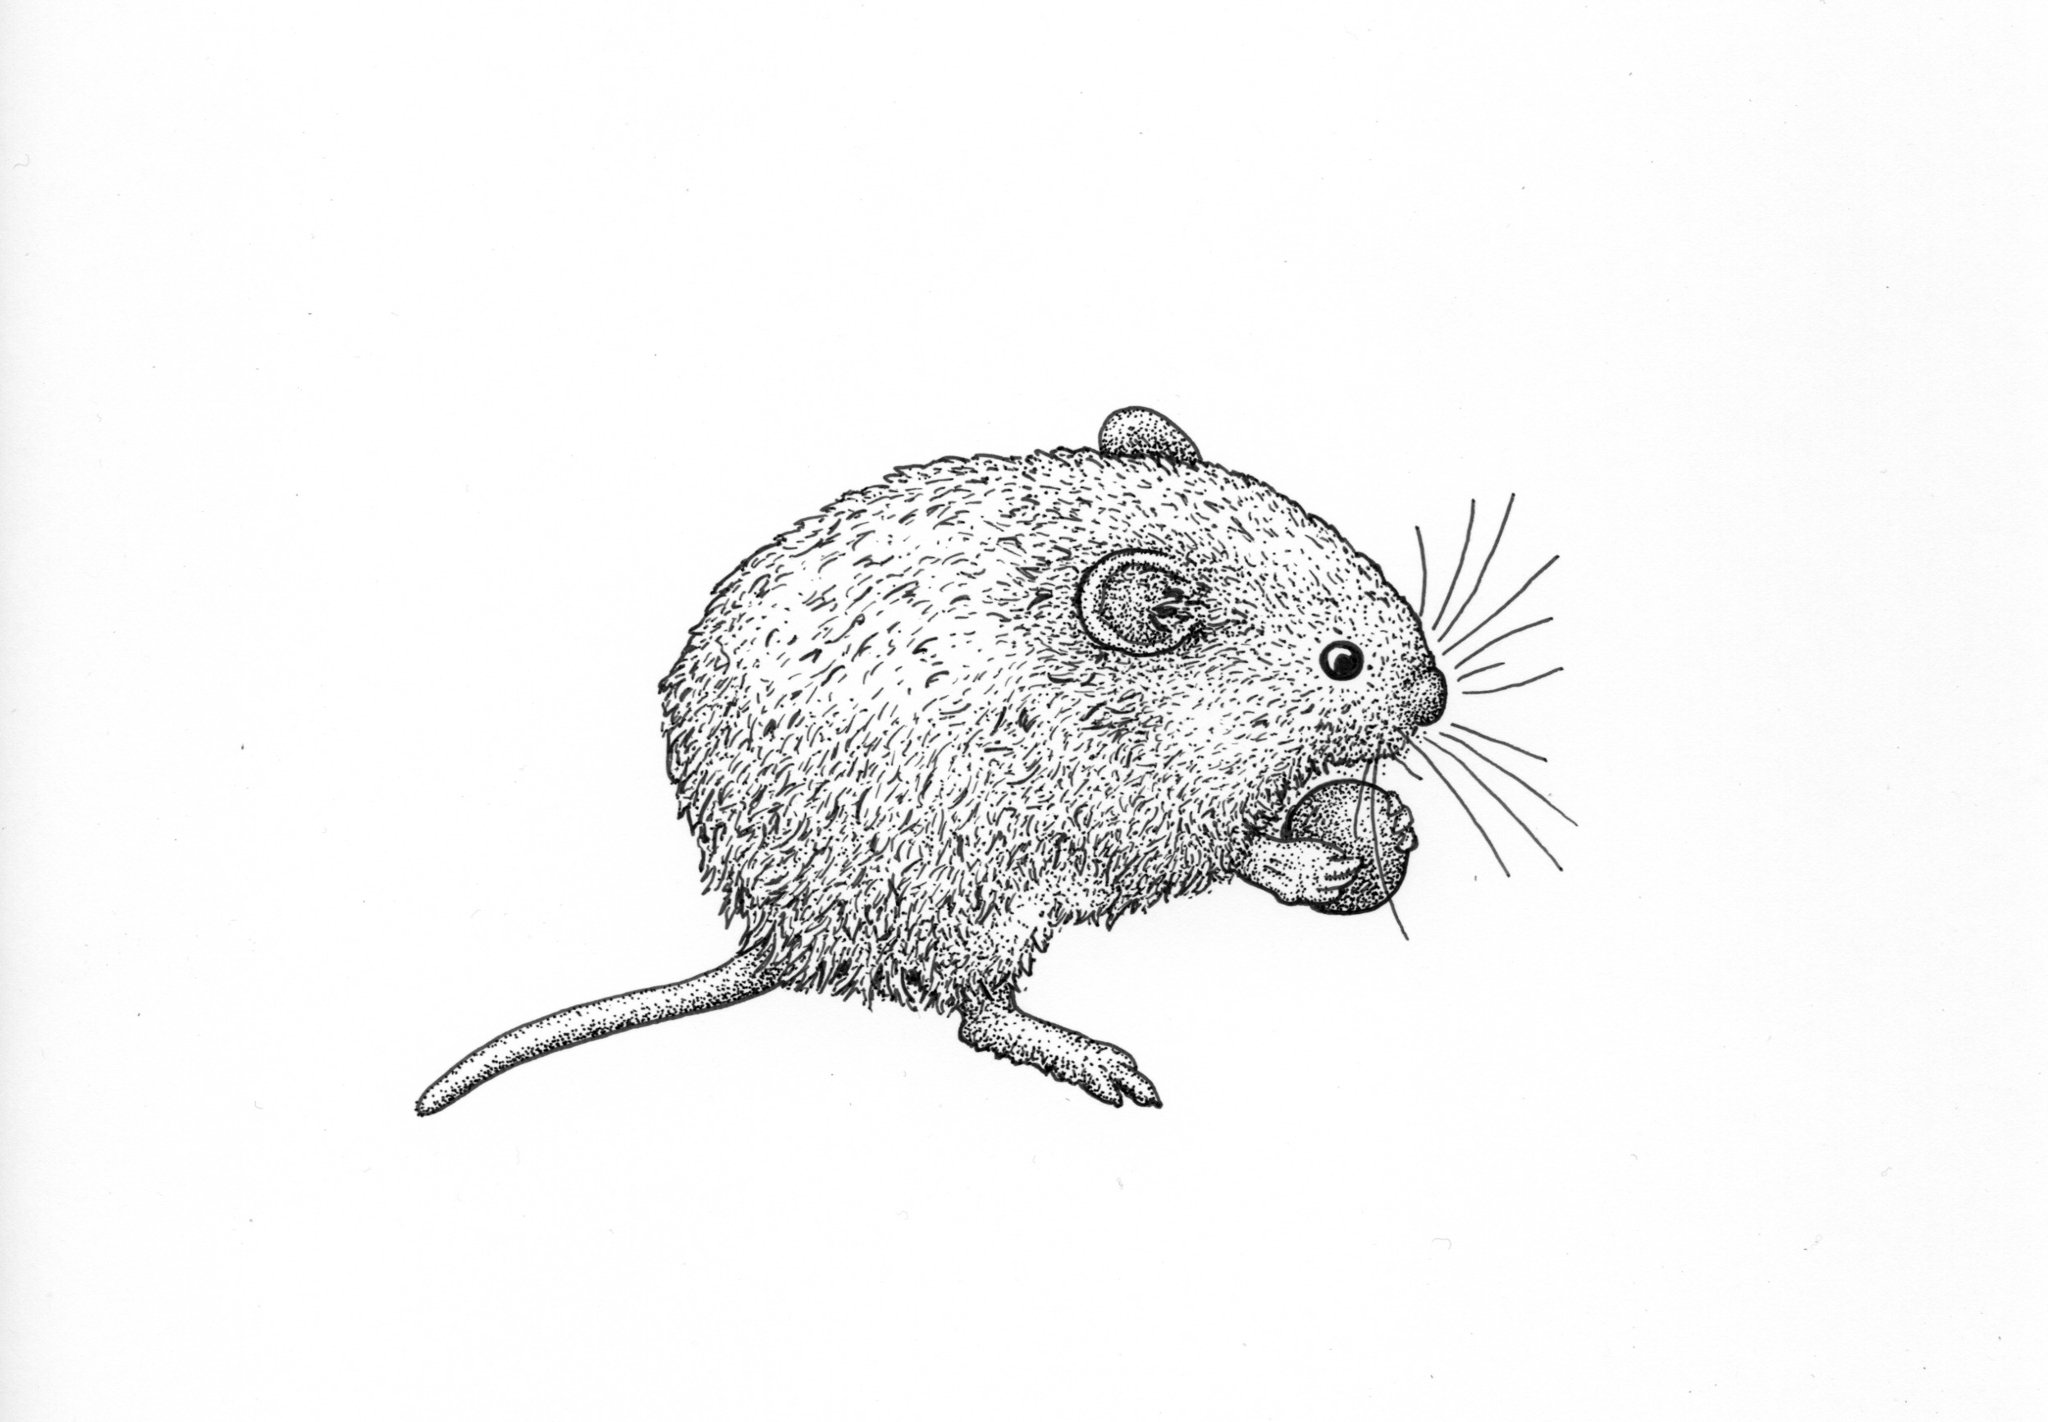 Red-backed vole drawing, rodent drawing, Alaskan vole